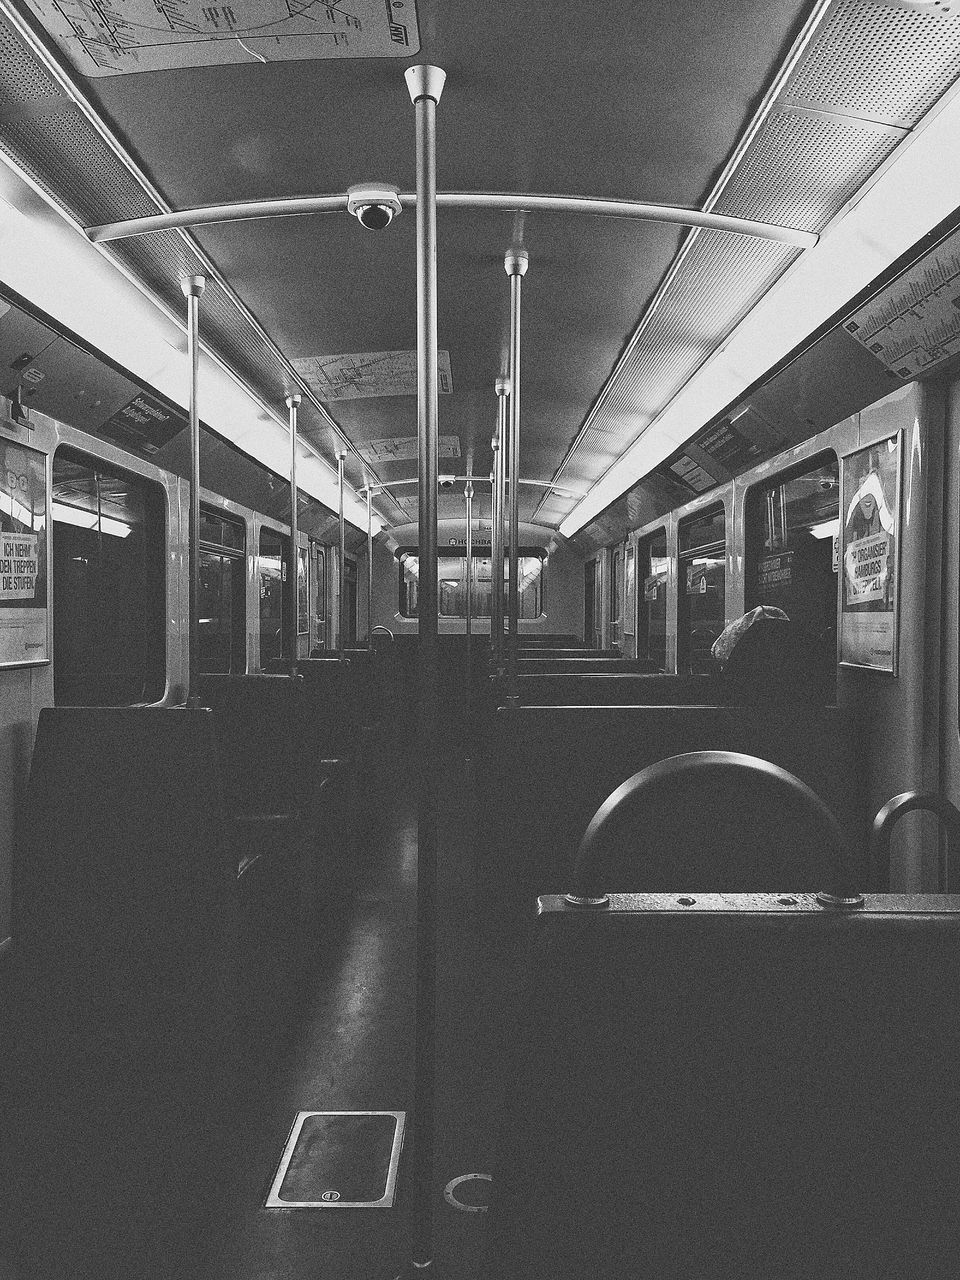 transportation, train - vehicle, vehicle interior, public transportation, rail transportation, mode of transport, train interior, indoors, vehicle seat, subway train, travel, window, journey, illuminated, no people, architectural column, commuter train, architecture, day